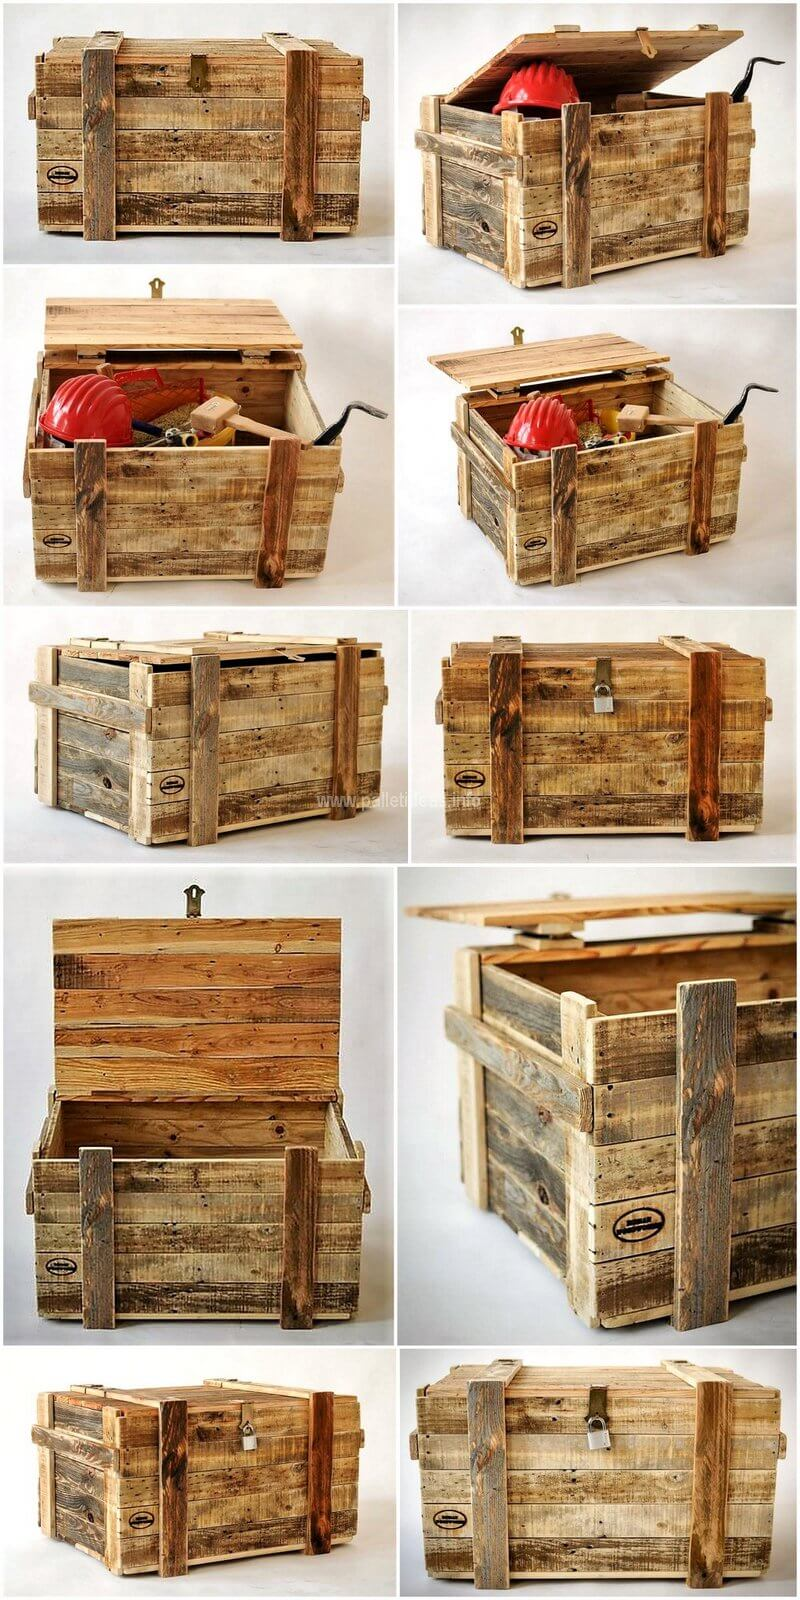 Diy Ideas To Reshape Used Shipping Wood Pallets Pallet Ideas